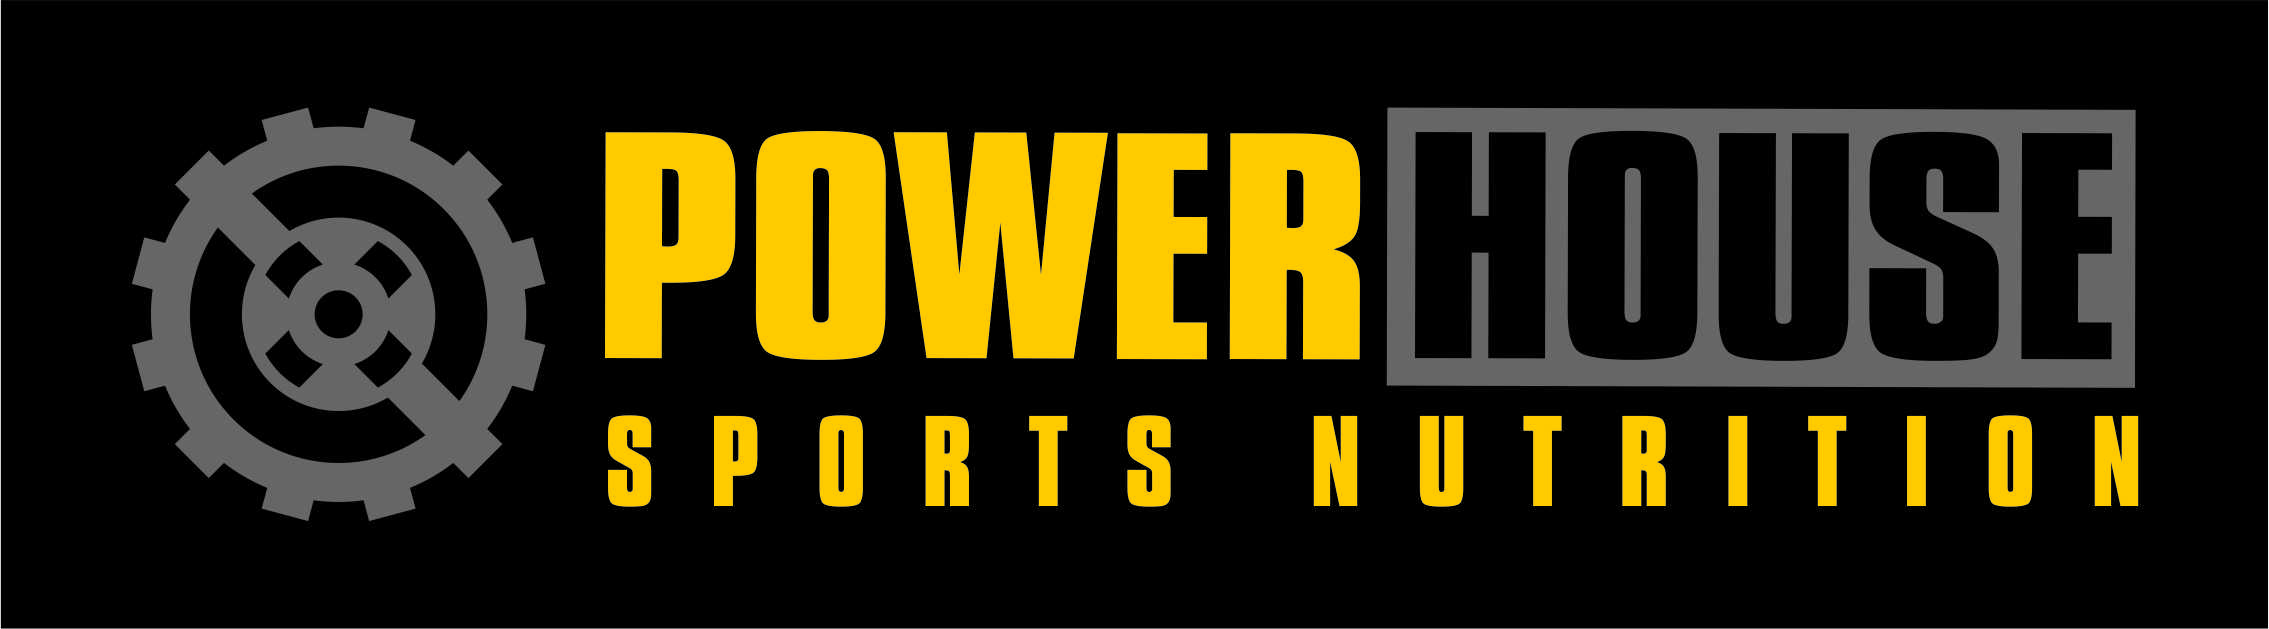 Power House Sports Nutrition